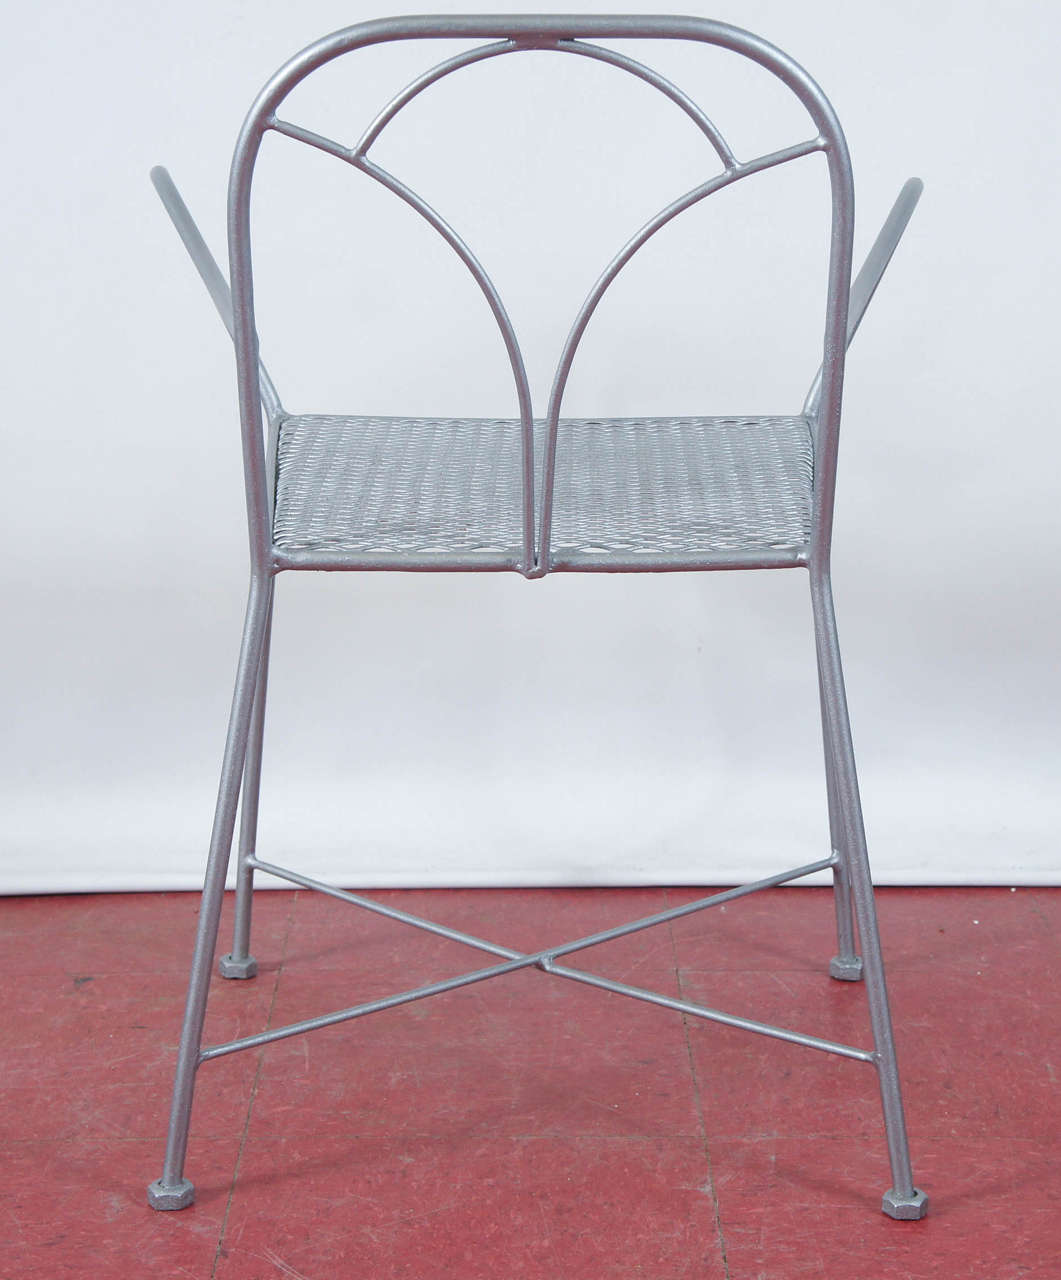 Six Art Deco Parisian Garden Chairs For Sale at 1stdibs